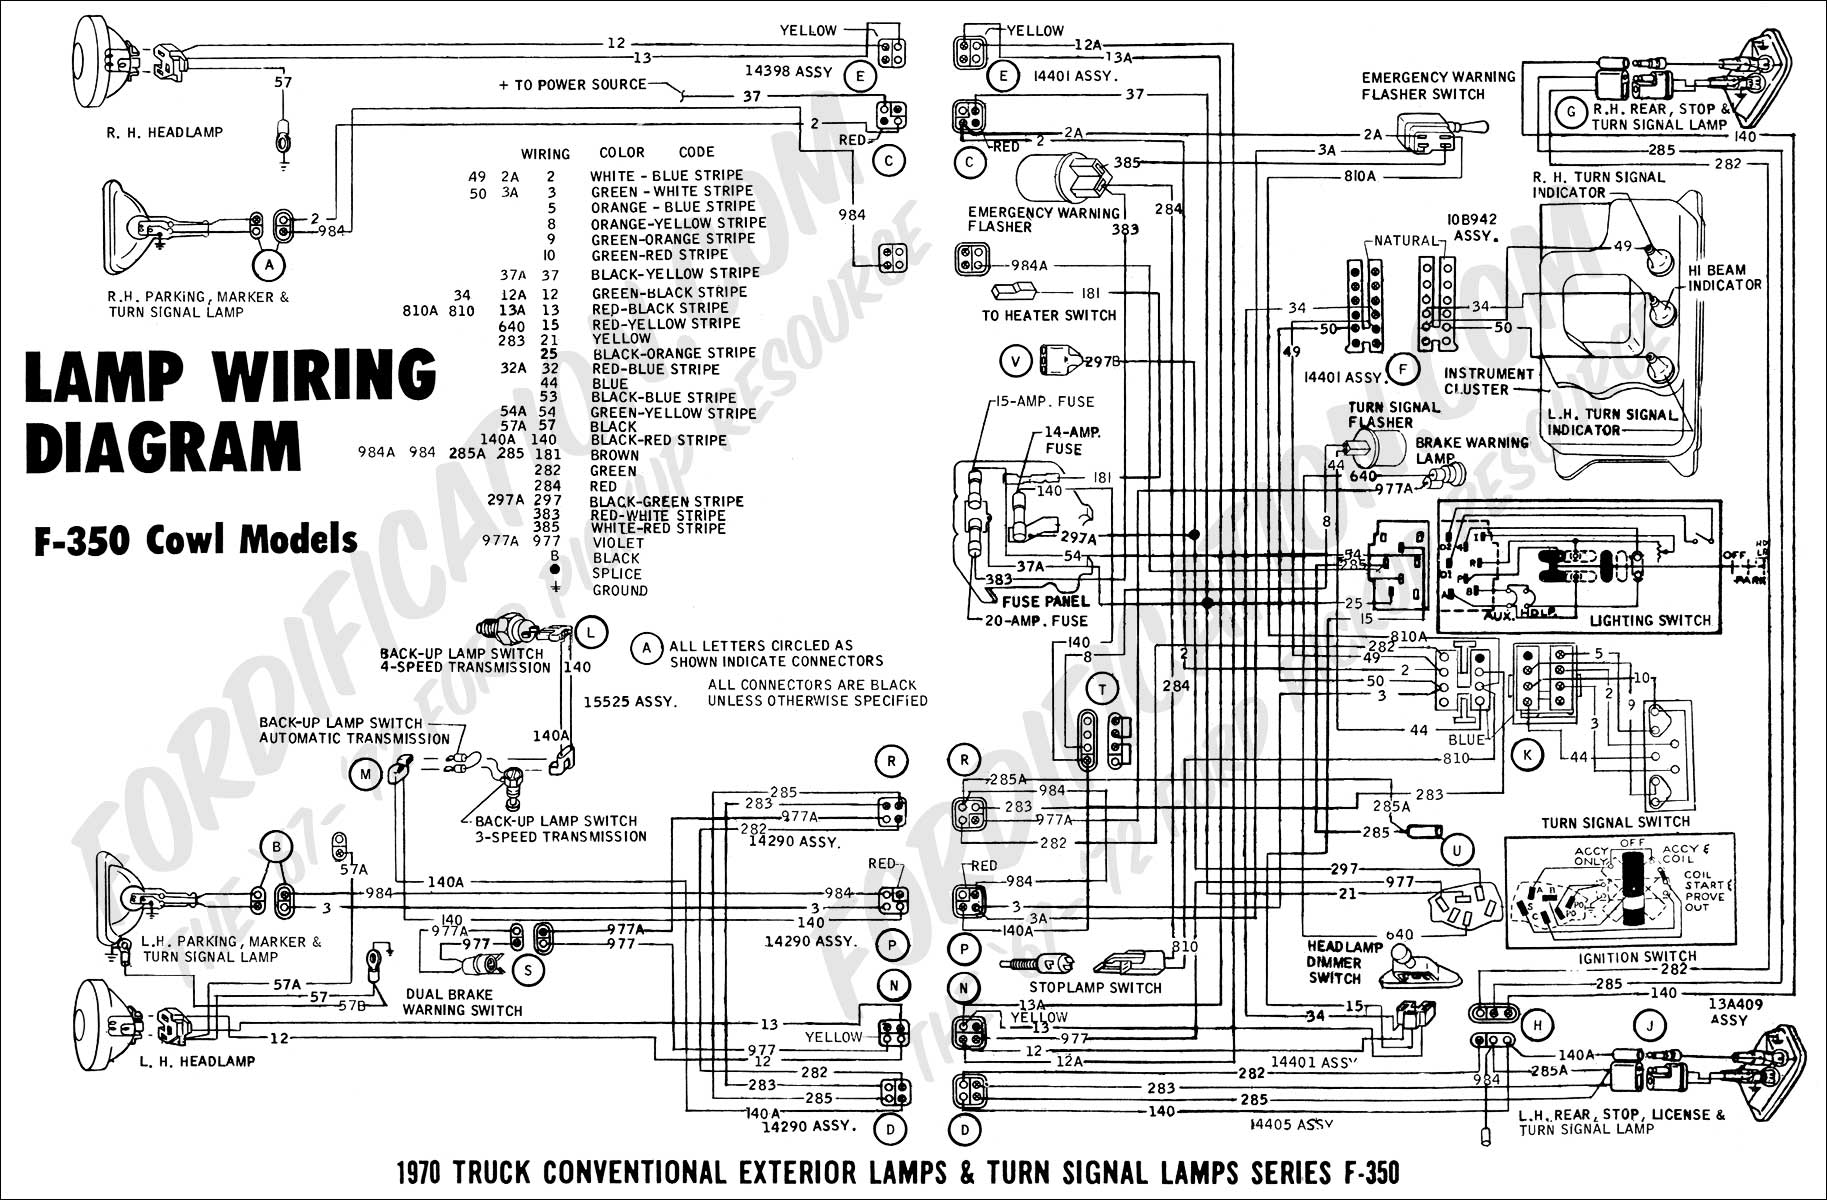 2007 Ford Freestar Wiring Schematics Expert Category Circuit Diagram 2006 Freestyle 250 Van Fuse Detailed Rh Jvpacks Com Radio